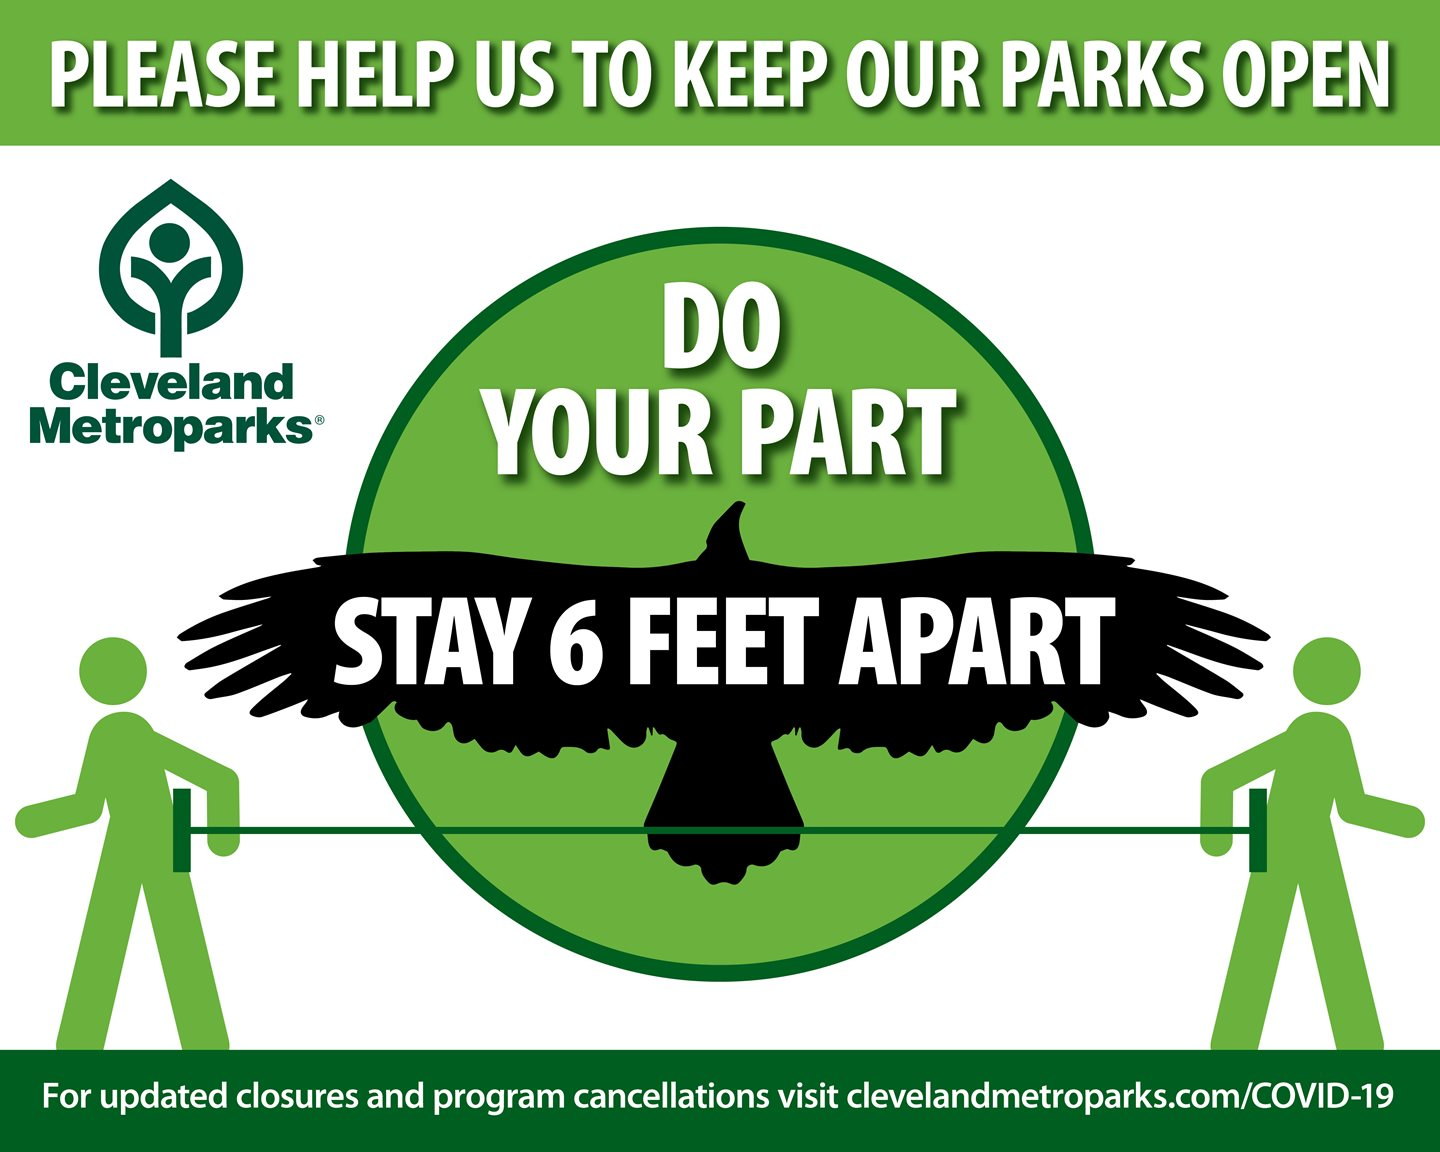 Cleveland Metroparks Implements New Measures to Encourage Social Distancing